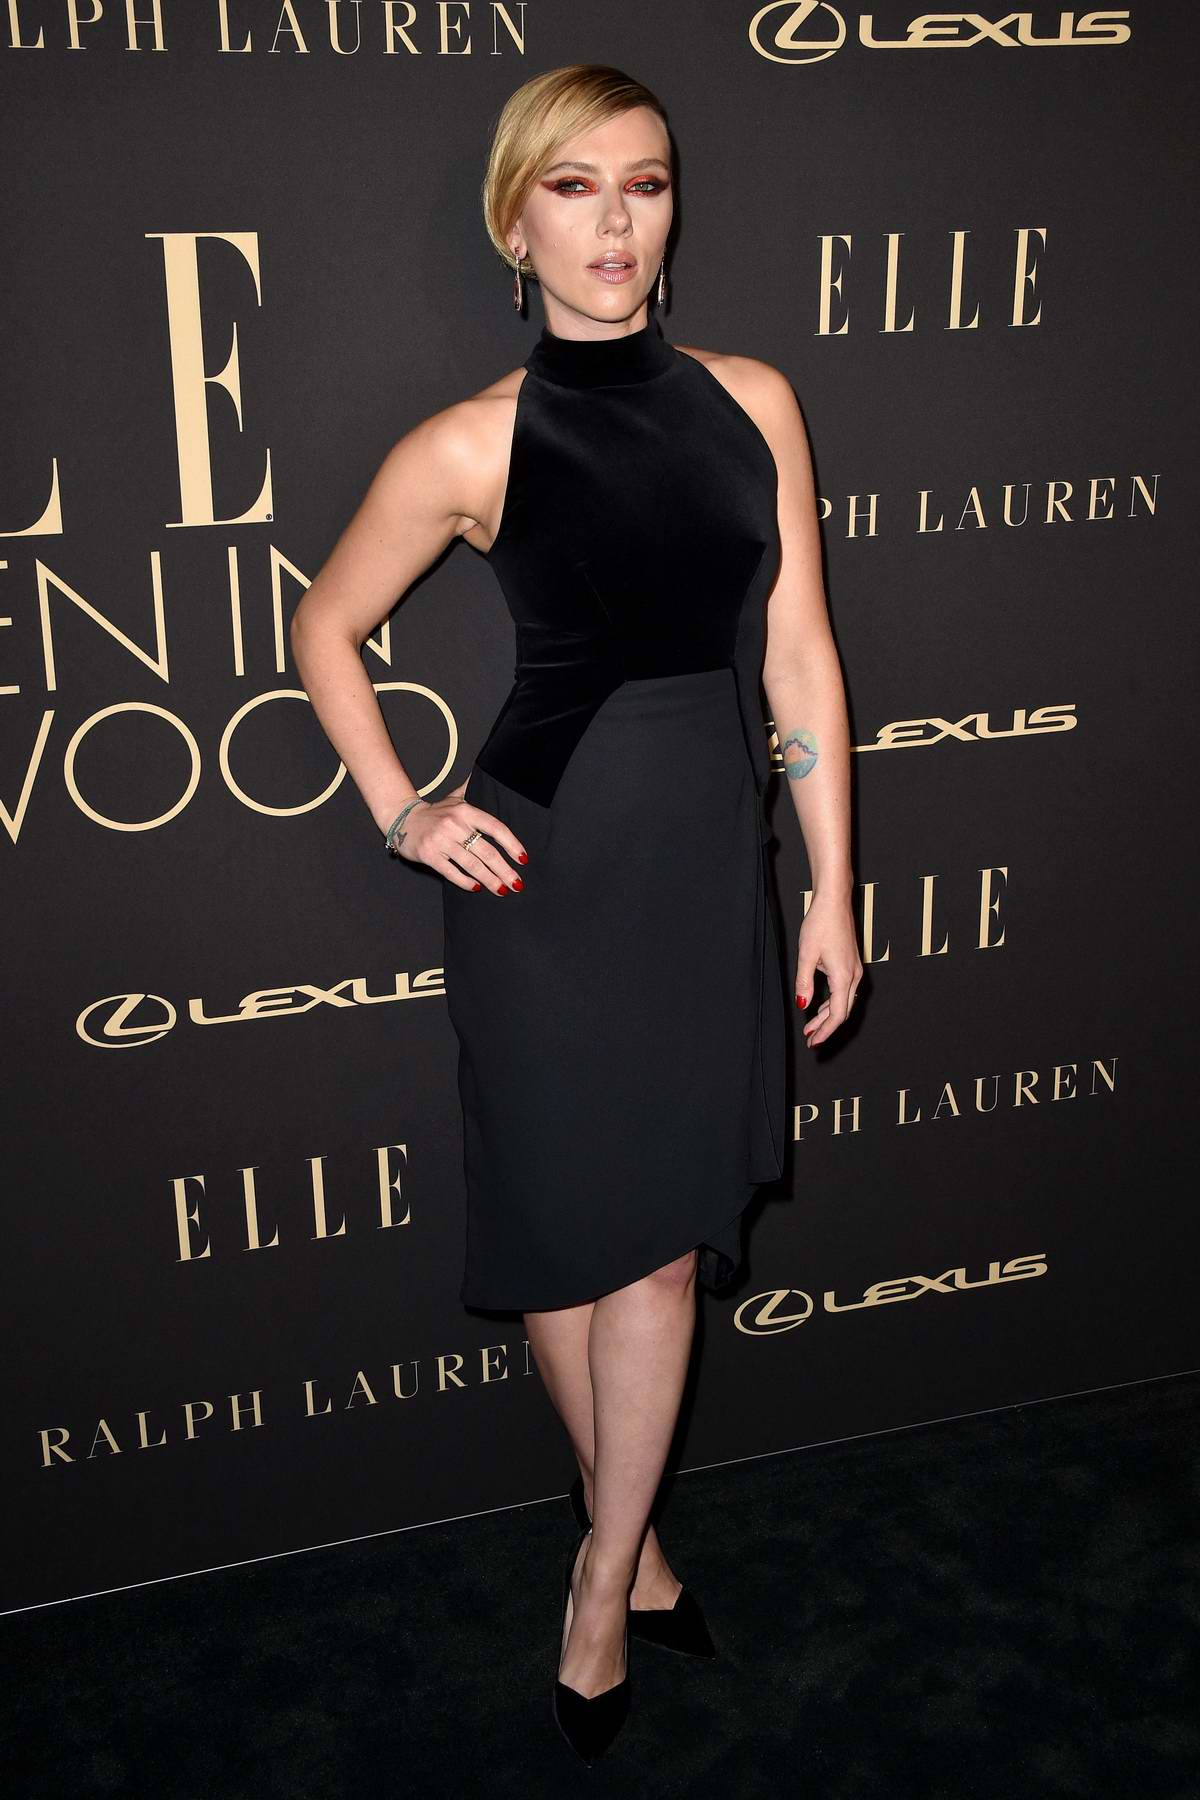 Scarlett Johansson attends ELLE's 26th Annual Women In Hollywood Celebration at The Four Seasons Hotel in Beverly Hills, California